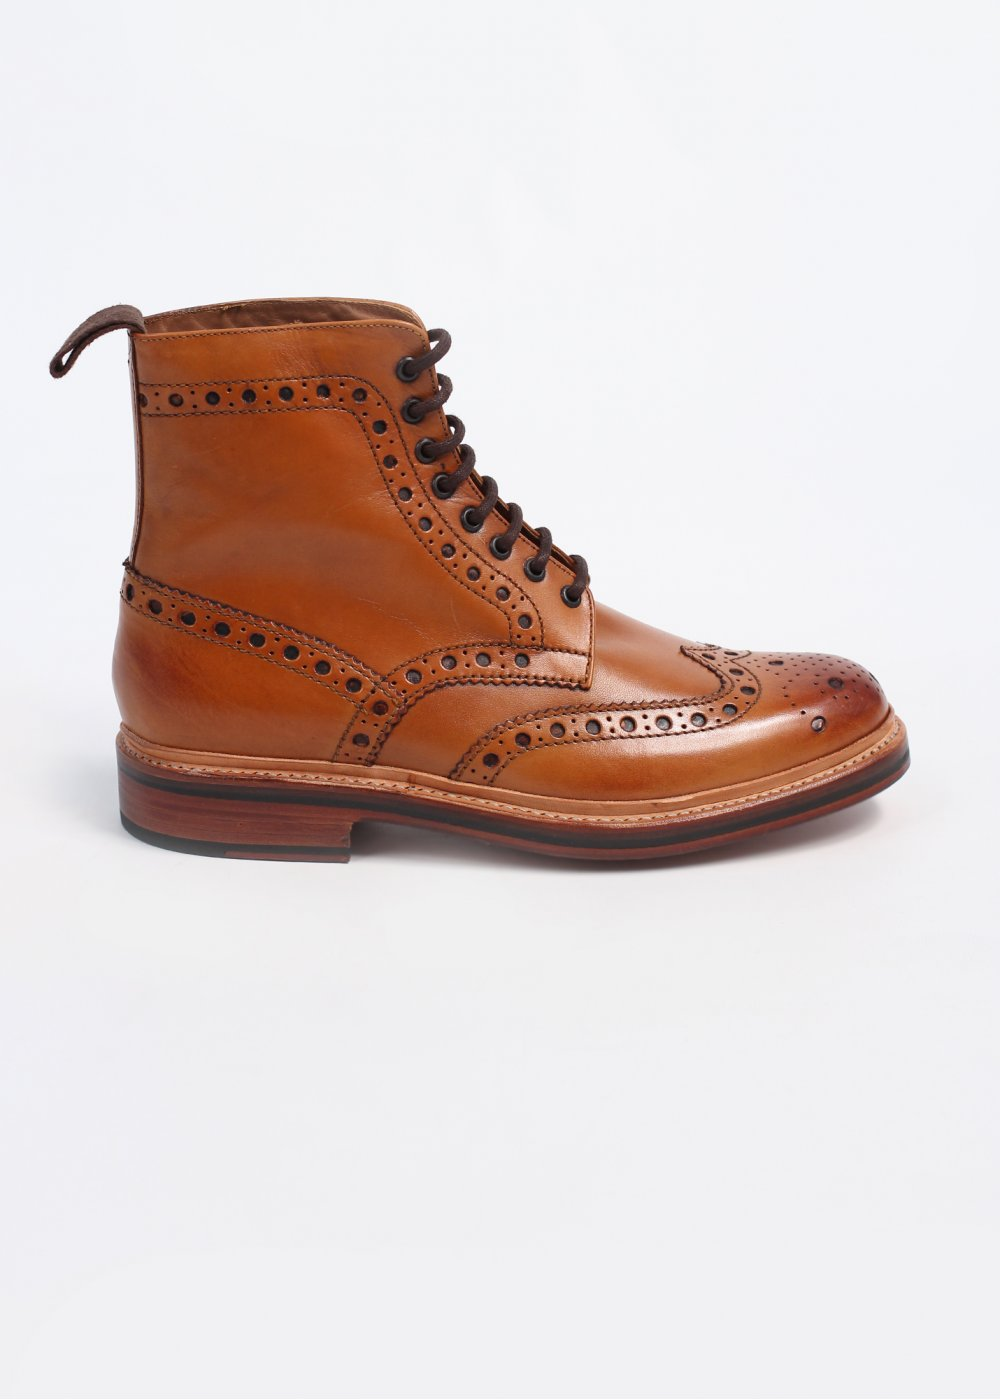 63071d08d15 Grenson Fred Leather Brogue Boots - Tan